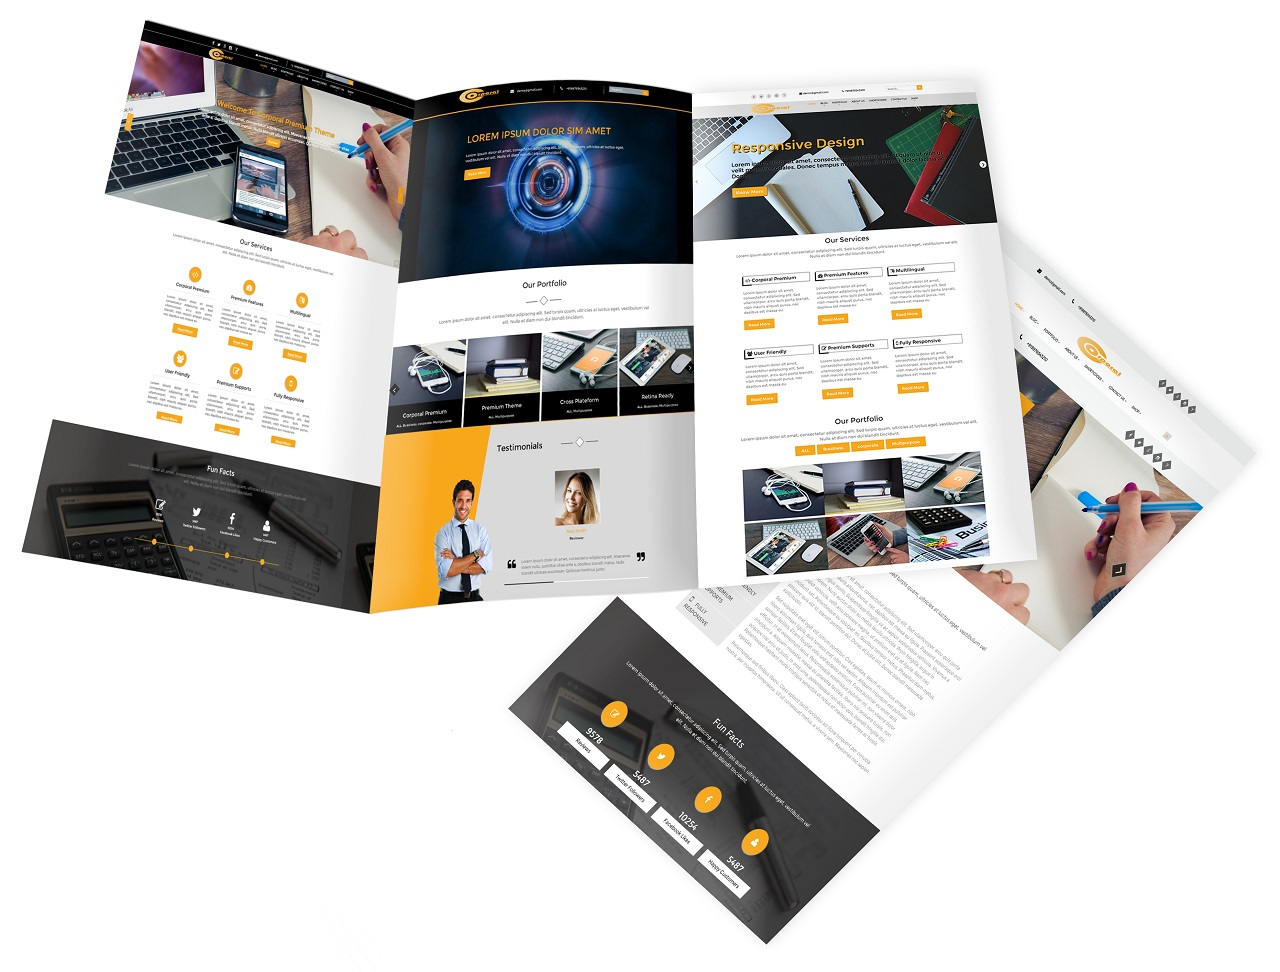 Corporal Premium WordPress Theme Screenshot 2